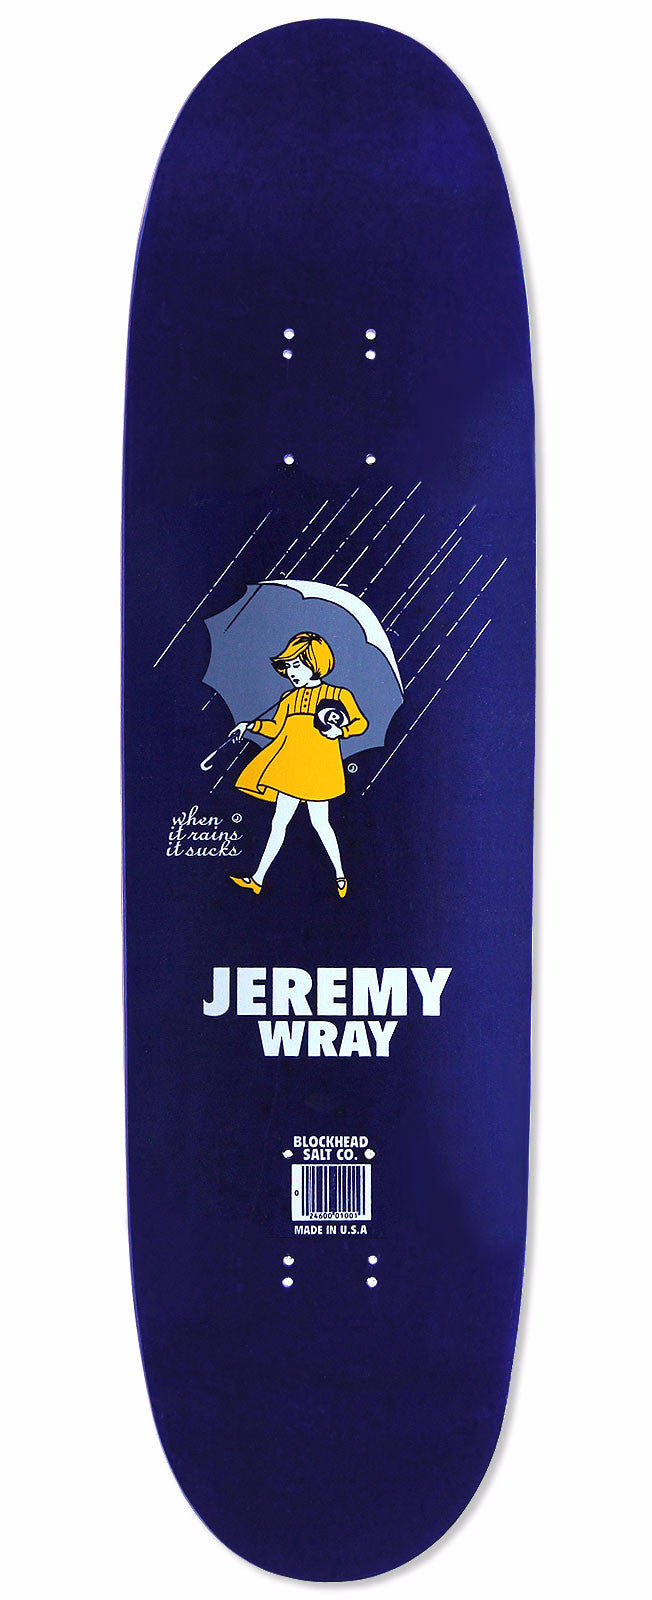 "Jeremy Wray ""rider"" Grip it and rip it!"